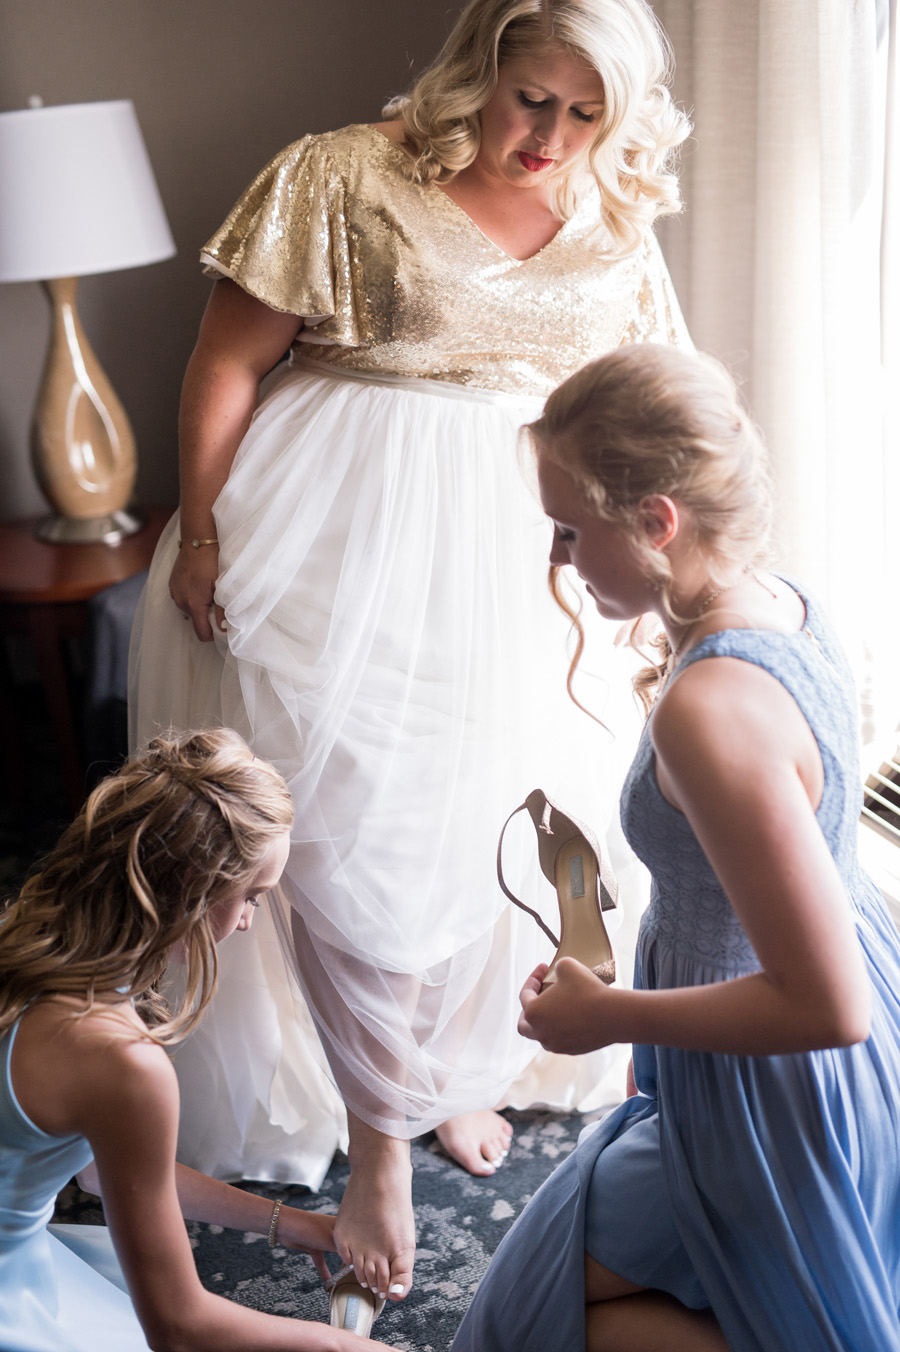 Bride putting her wedding shoes on.